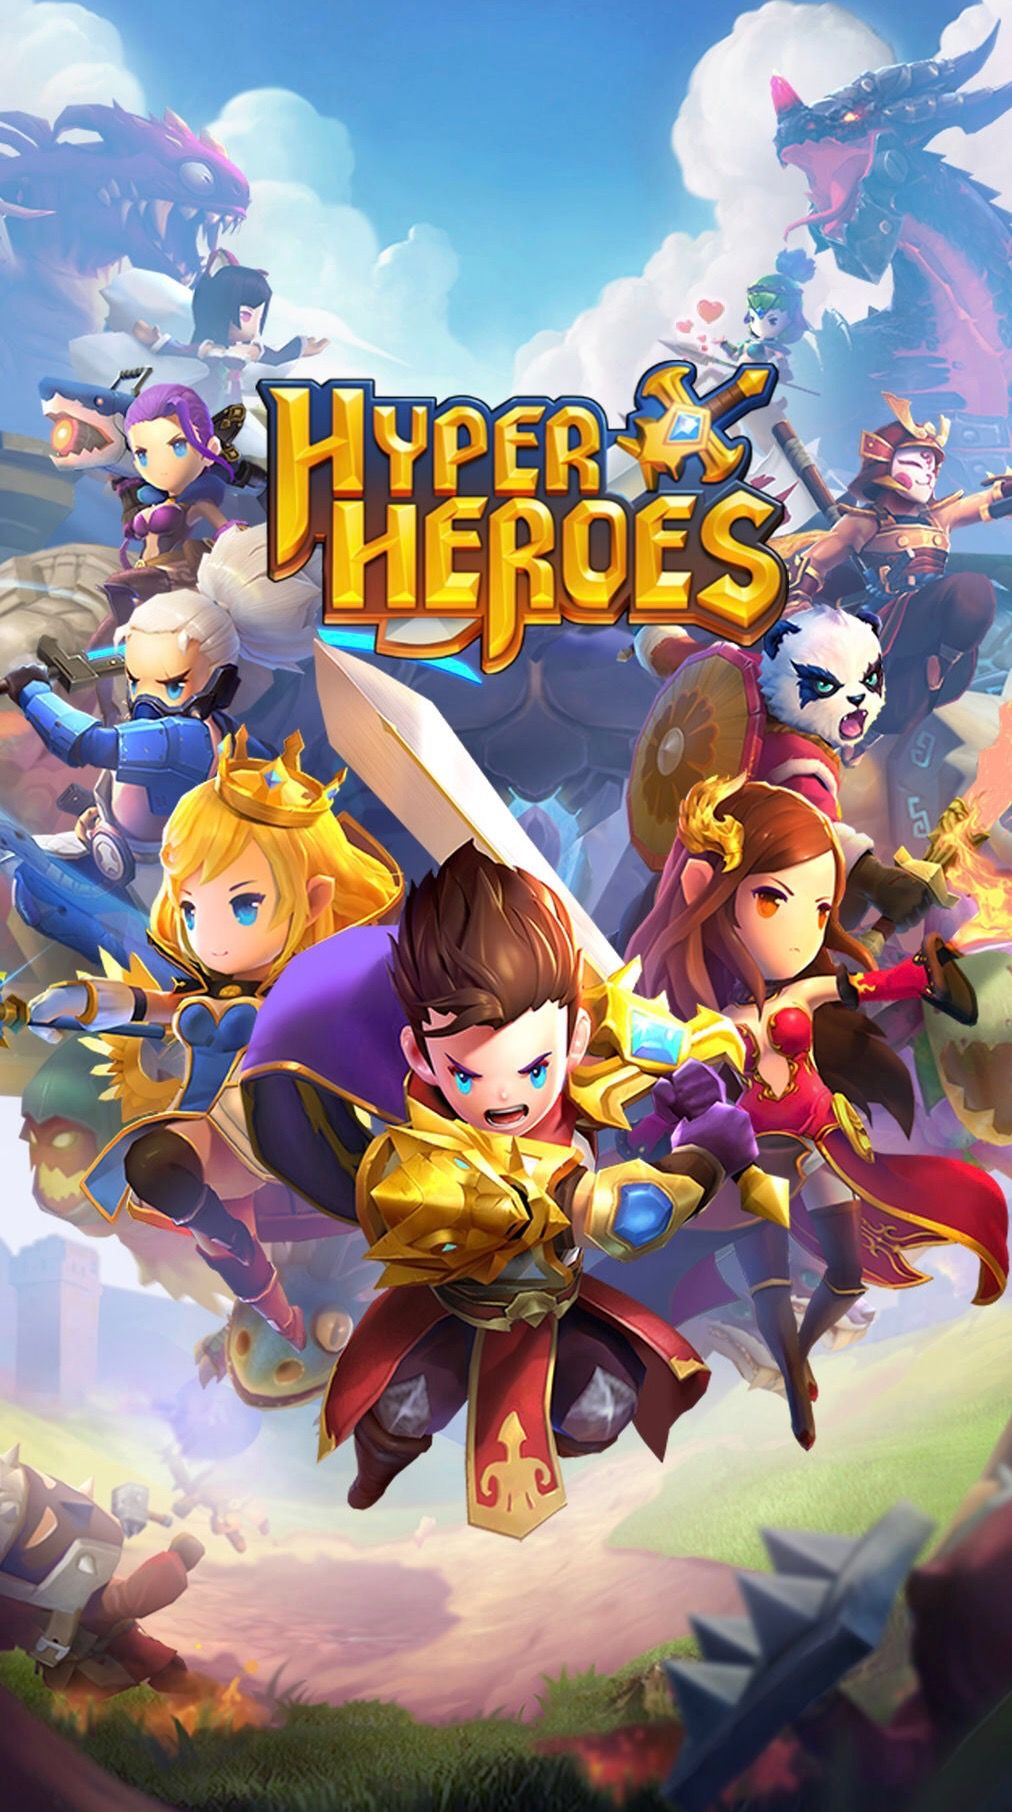 Hyper Heroes game character graphics 게임